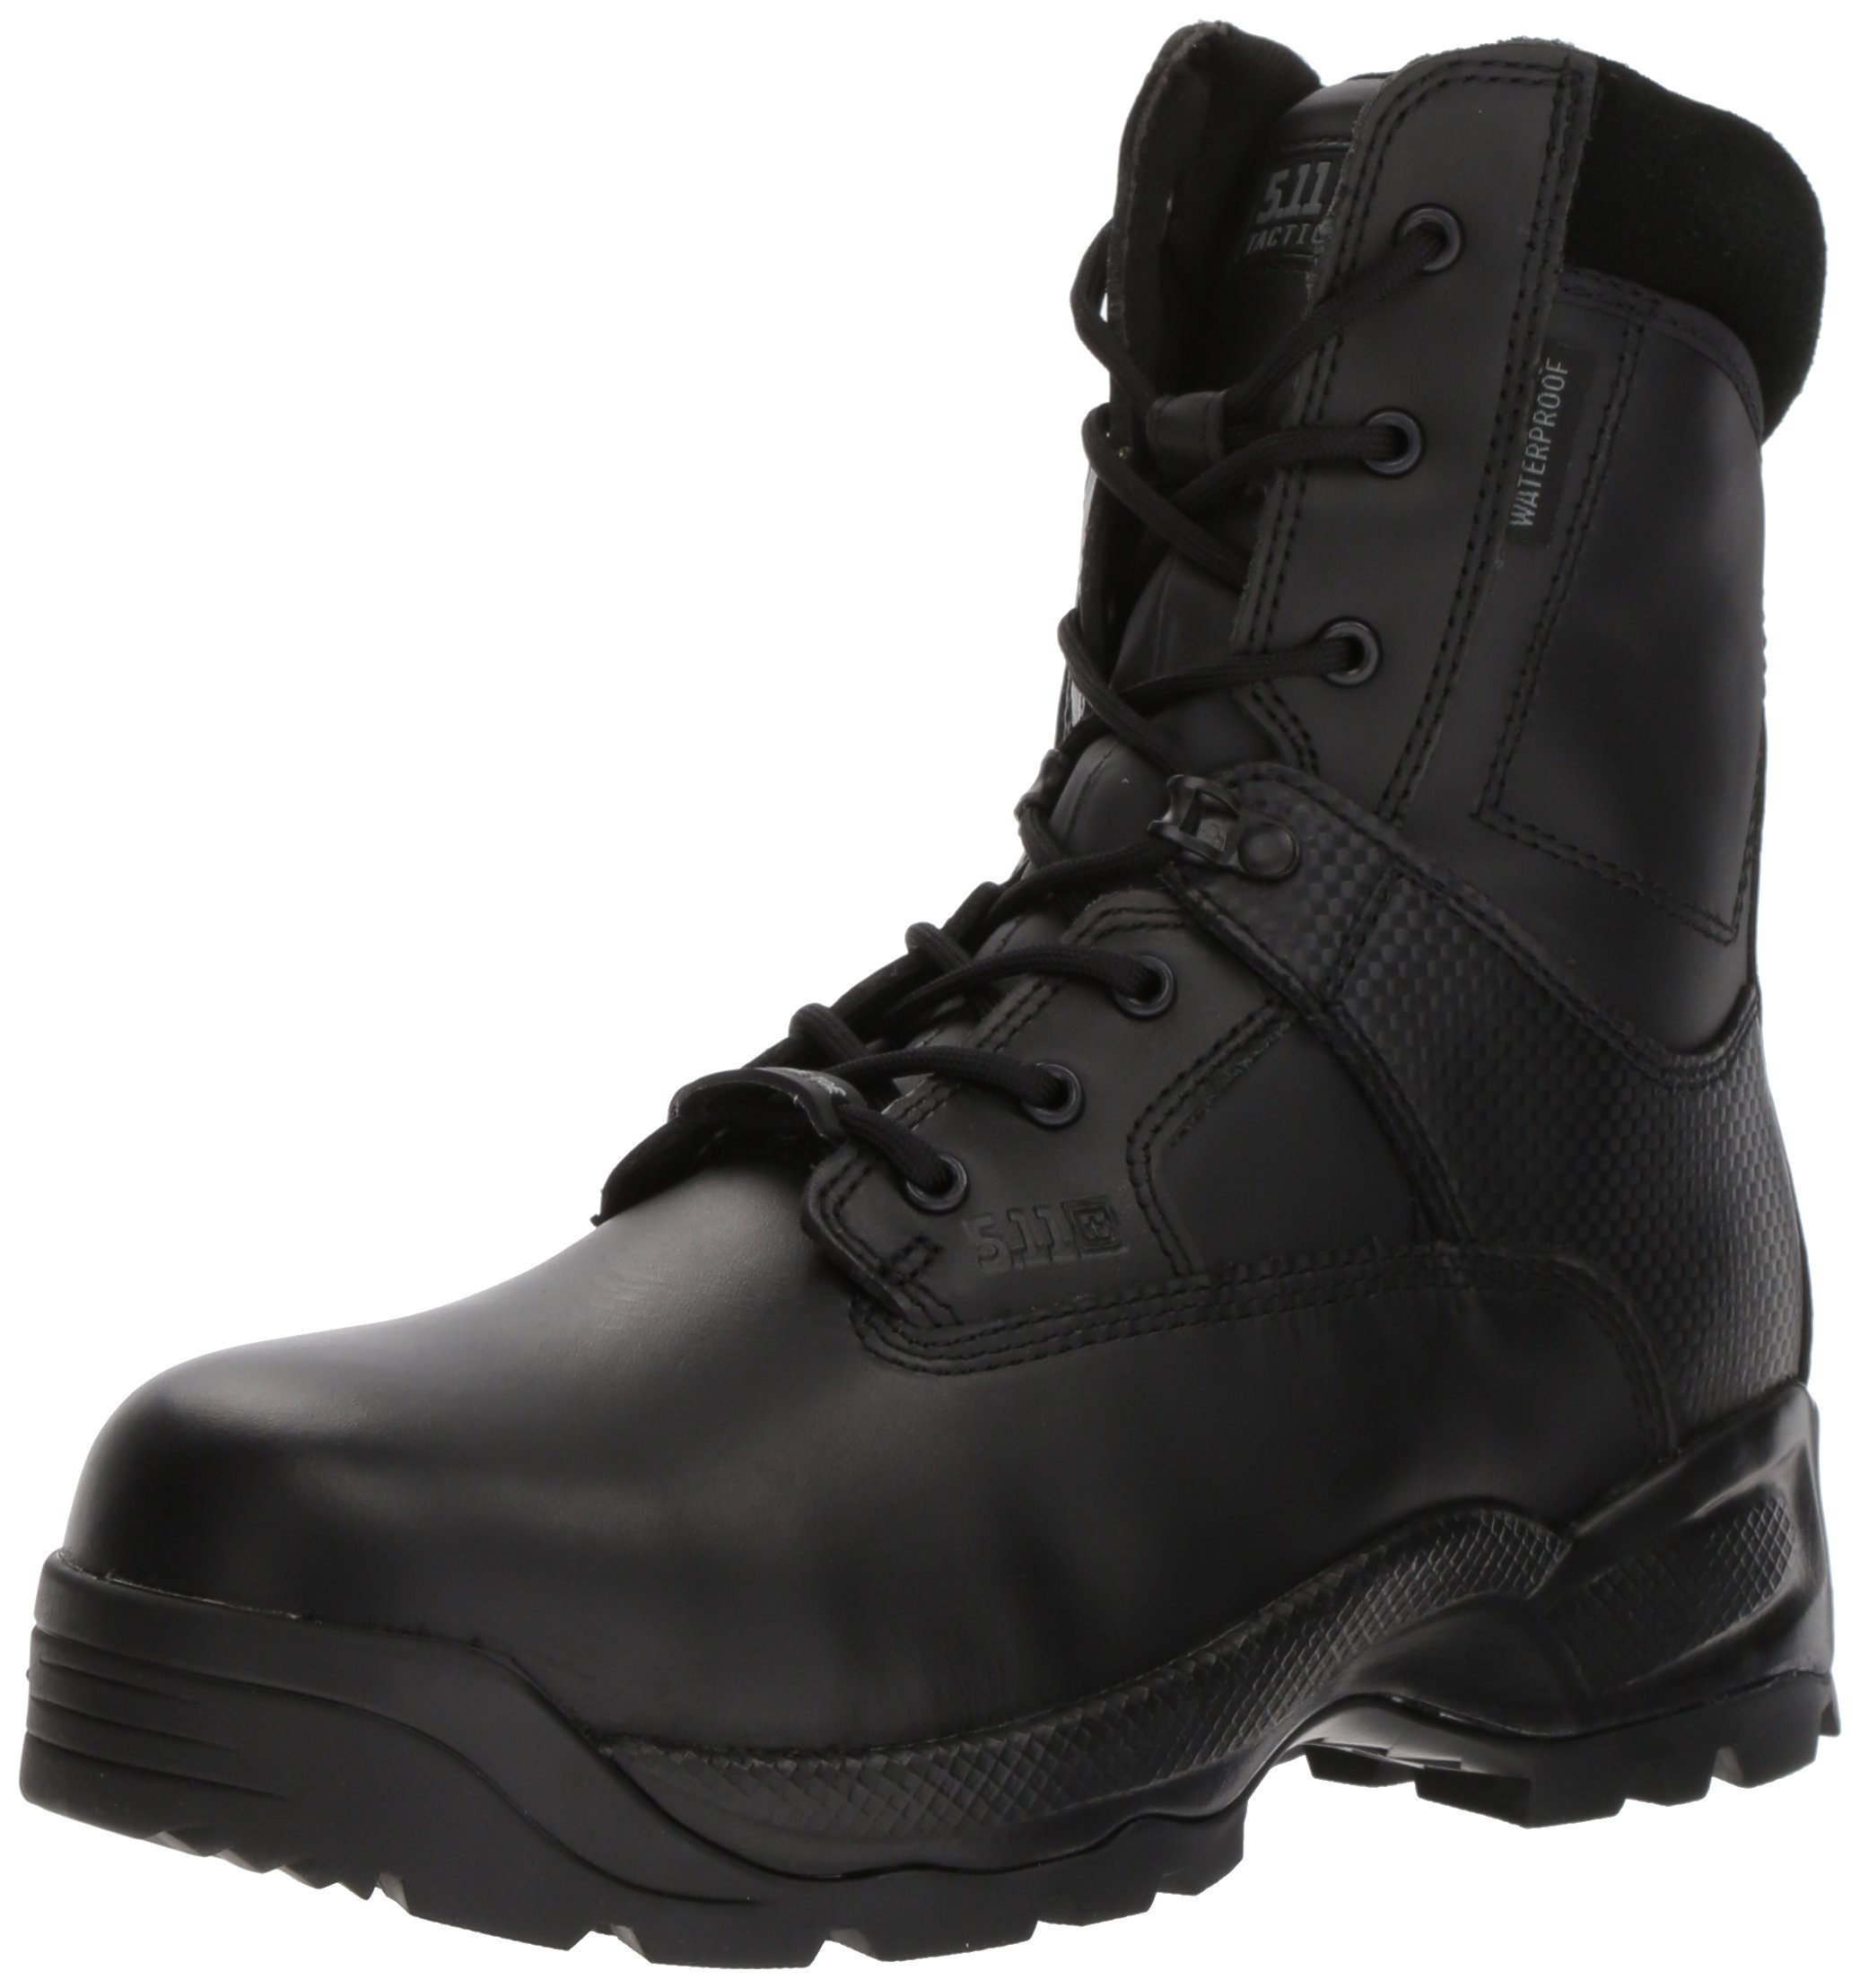 5.11 Tactical Men's A.T.A.C. Shield 8 Inch Side Zip Boot, Black, 7 W US